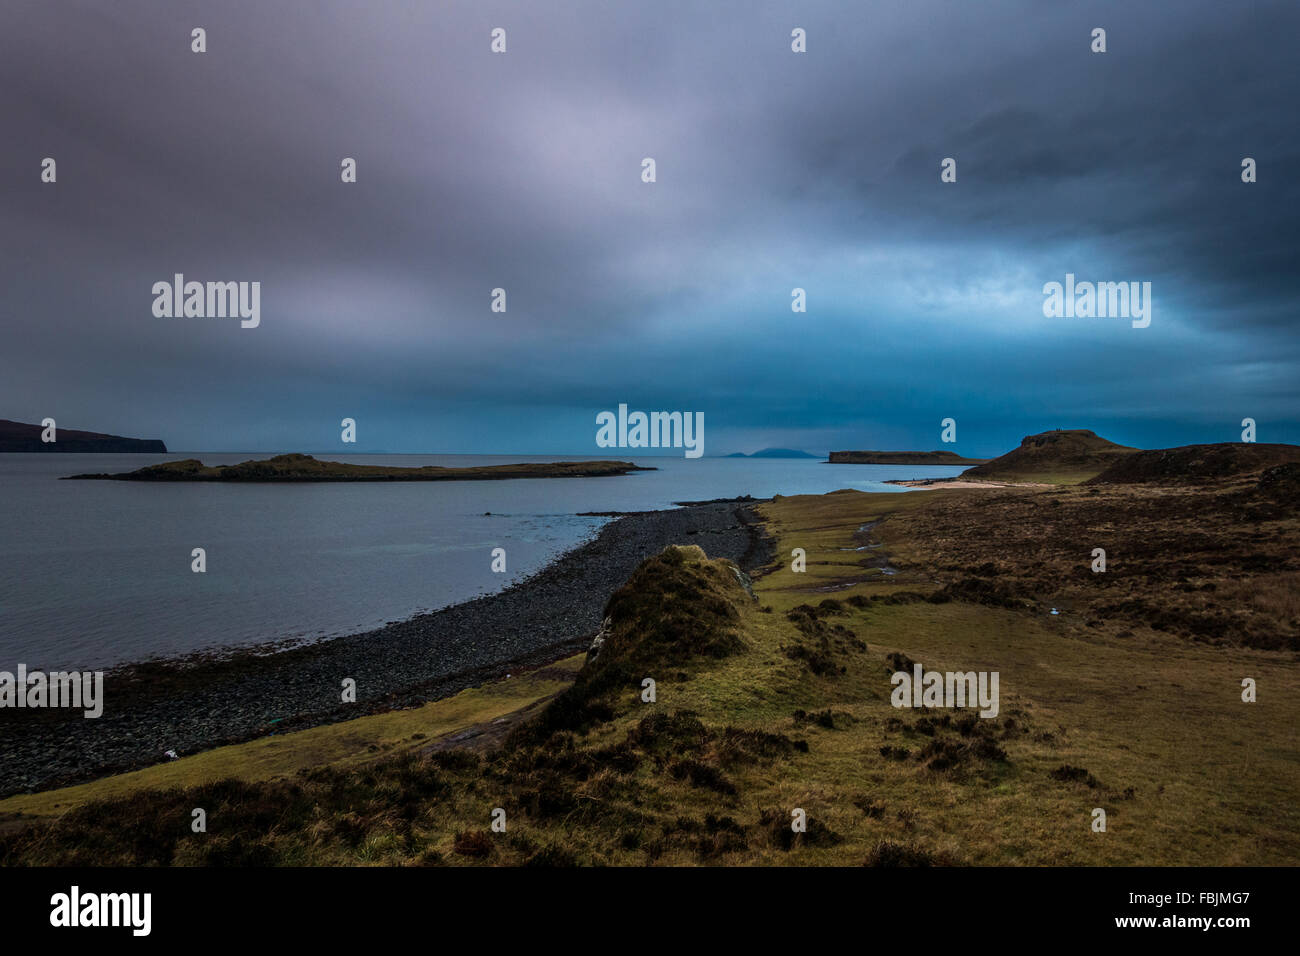 Coral Beach at sunset looking out to sea.  An Dorneil, Loch Dunvegan, Isle of Skye, Inner Hebrides, Scotland, UK - Stock Image